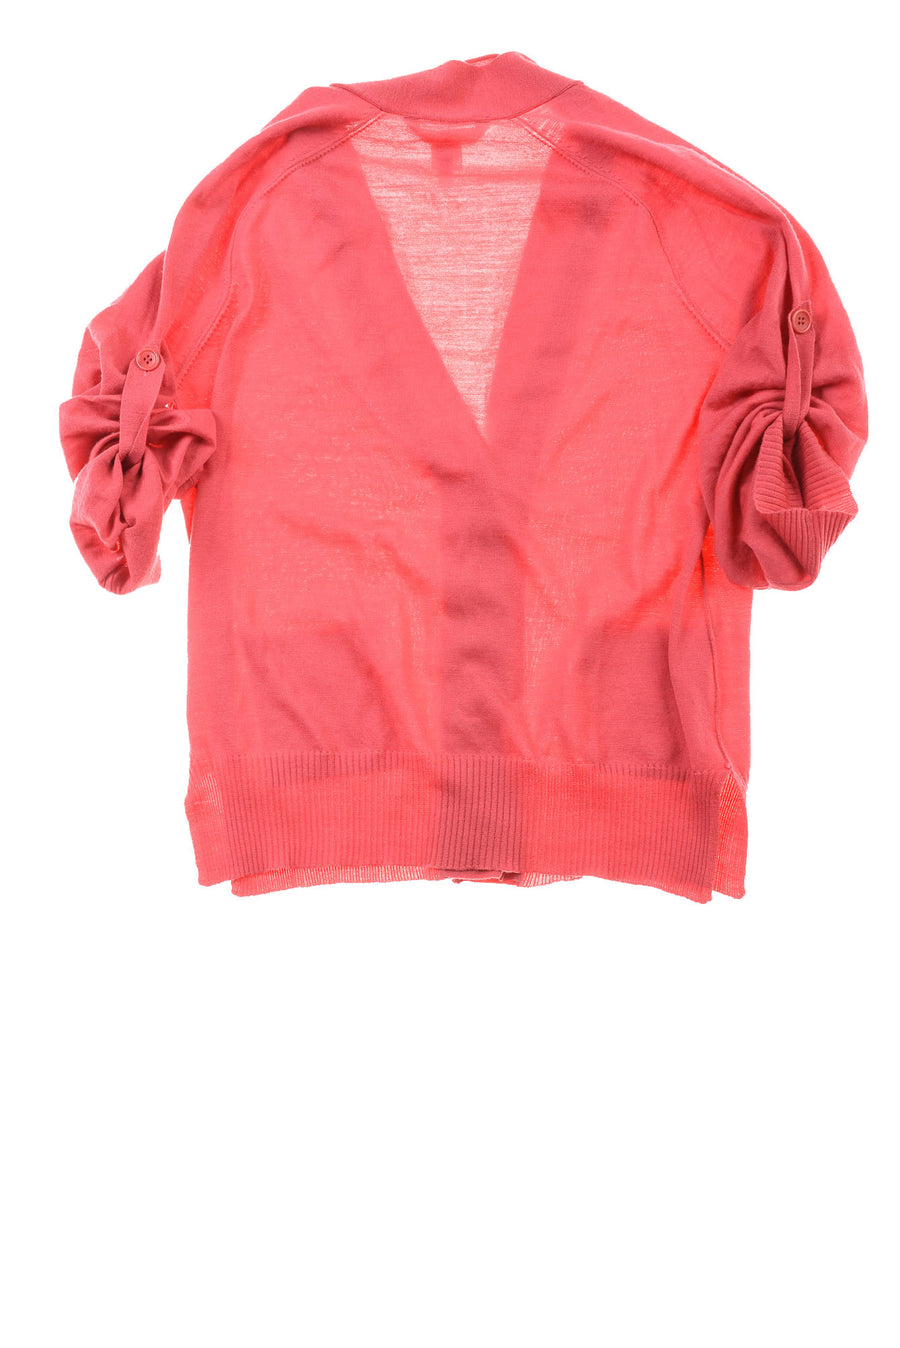 USED BCBG Maxazria Women's Sweater Small Pink